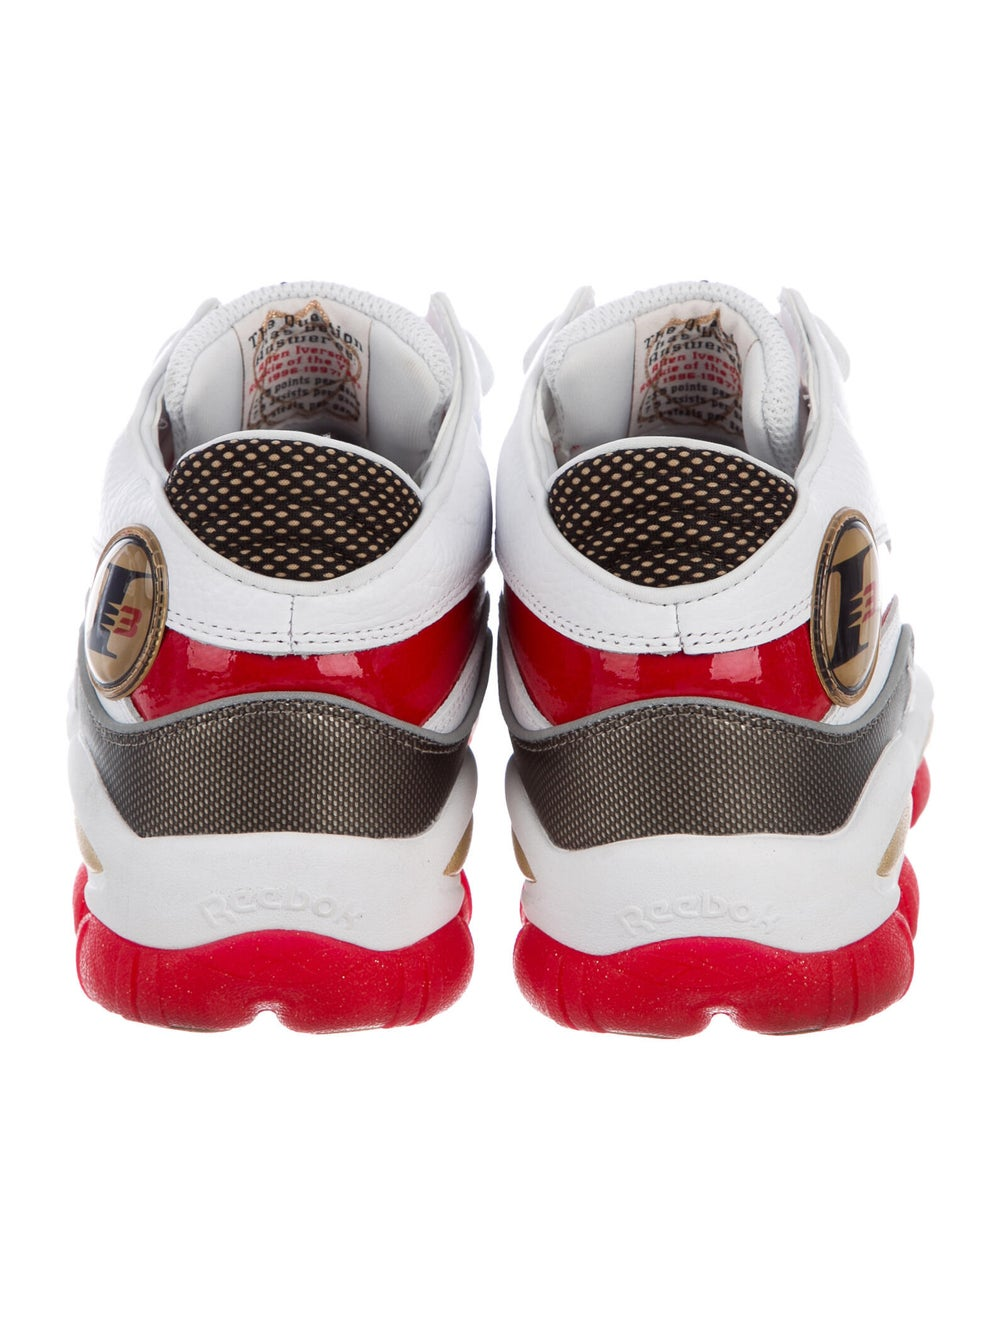 Reebok 2018 The Answer DMX Sneakers white - image 4